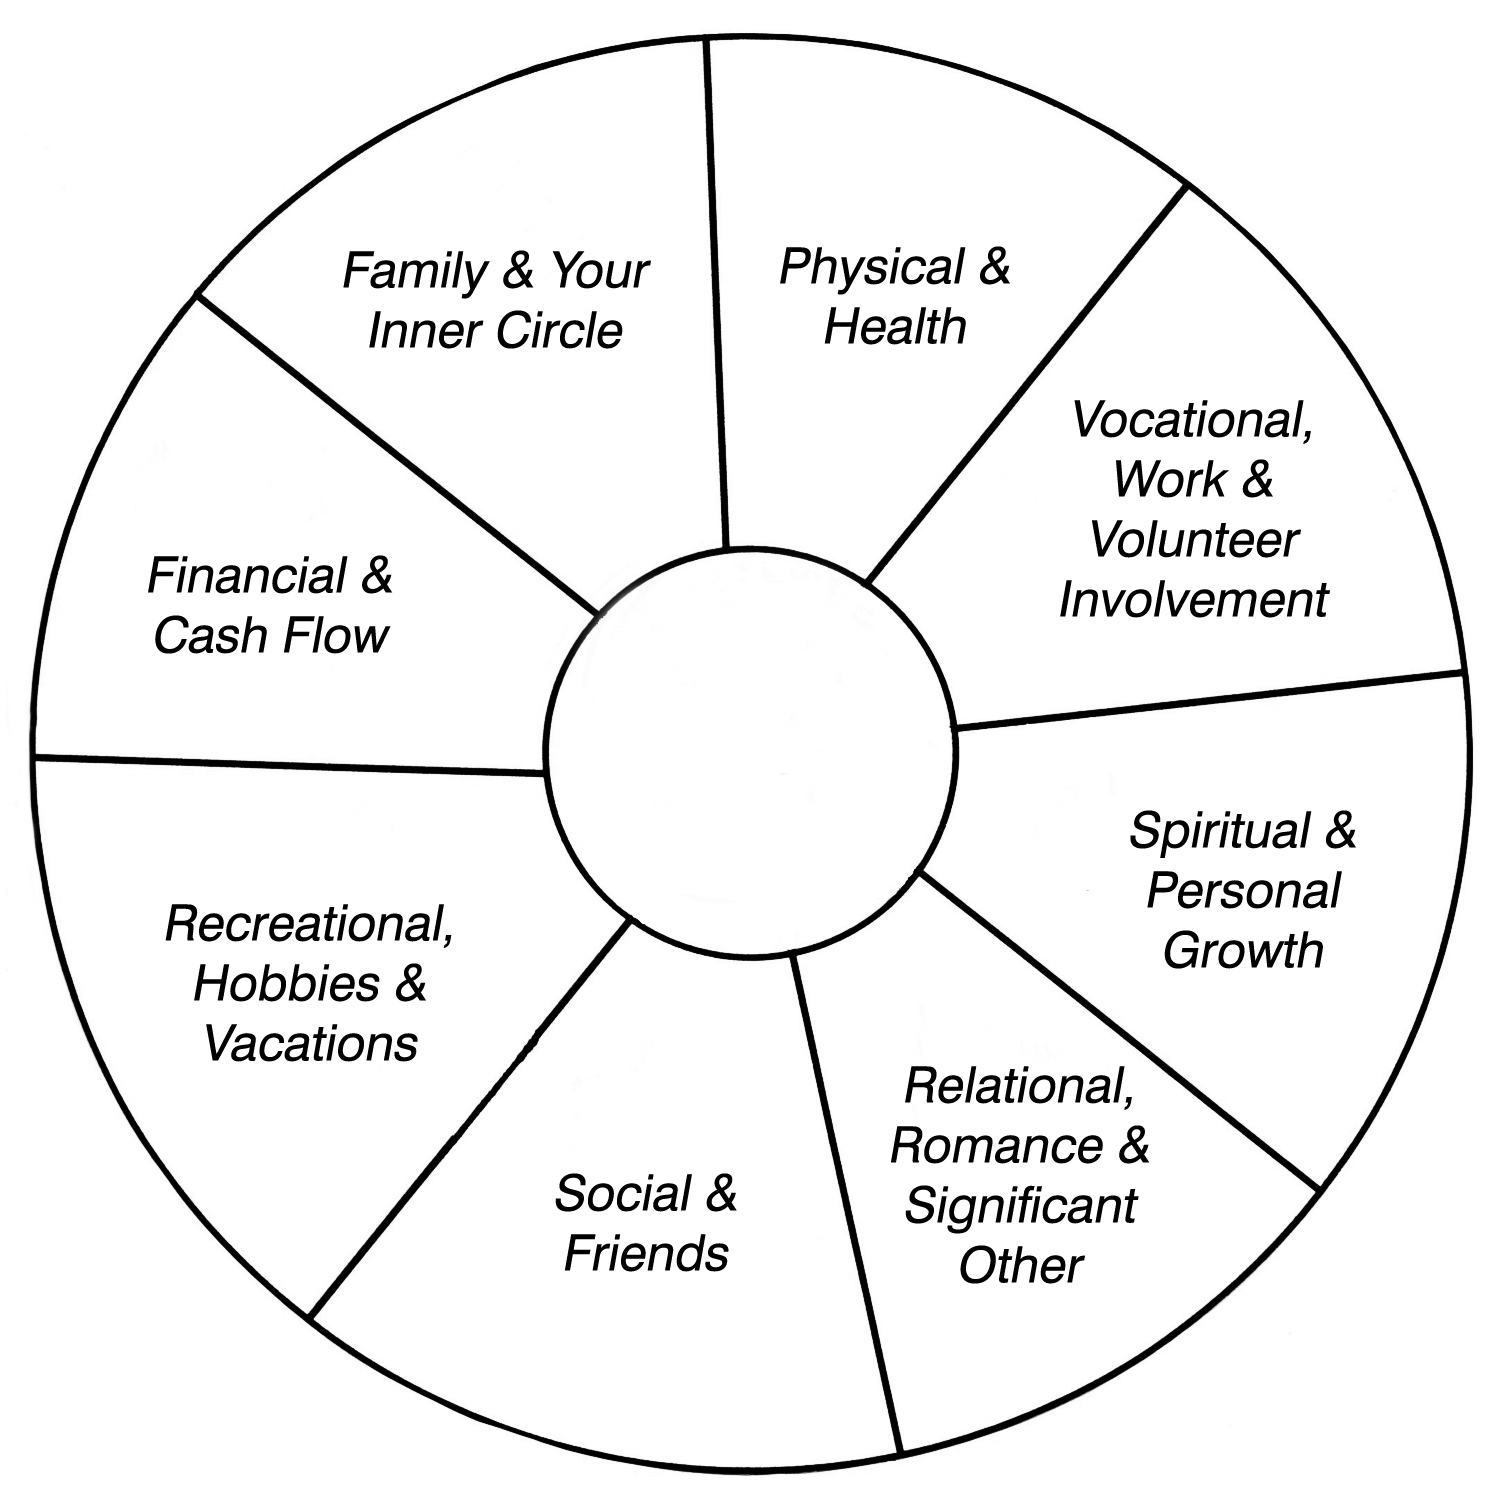 Ken Donaldson Lmhc Whole Life Balance Wheel Assessment